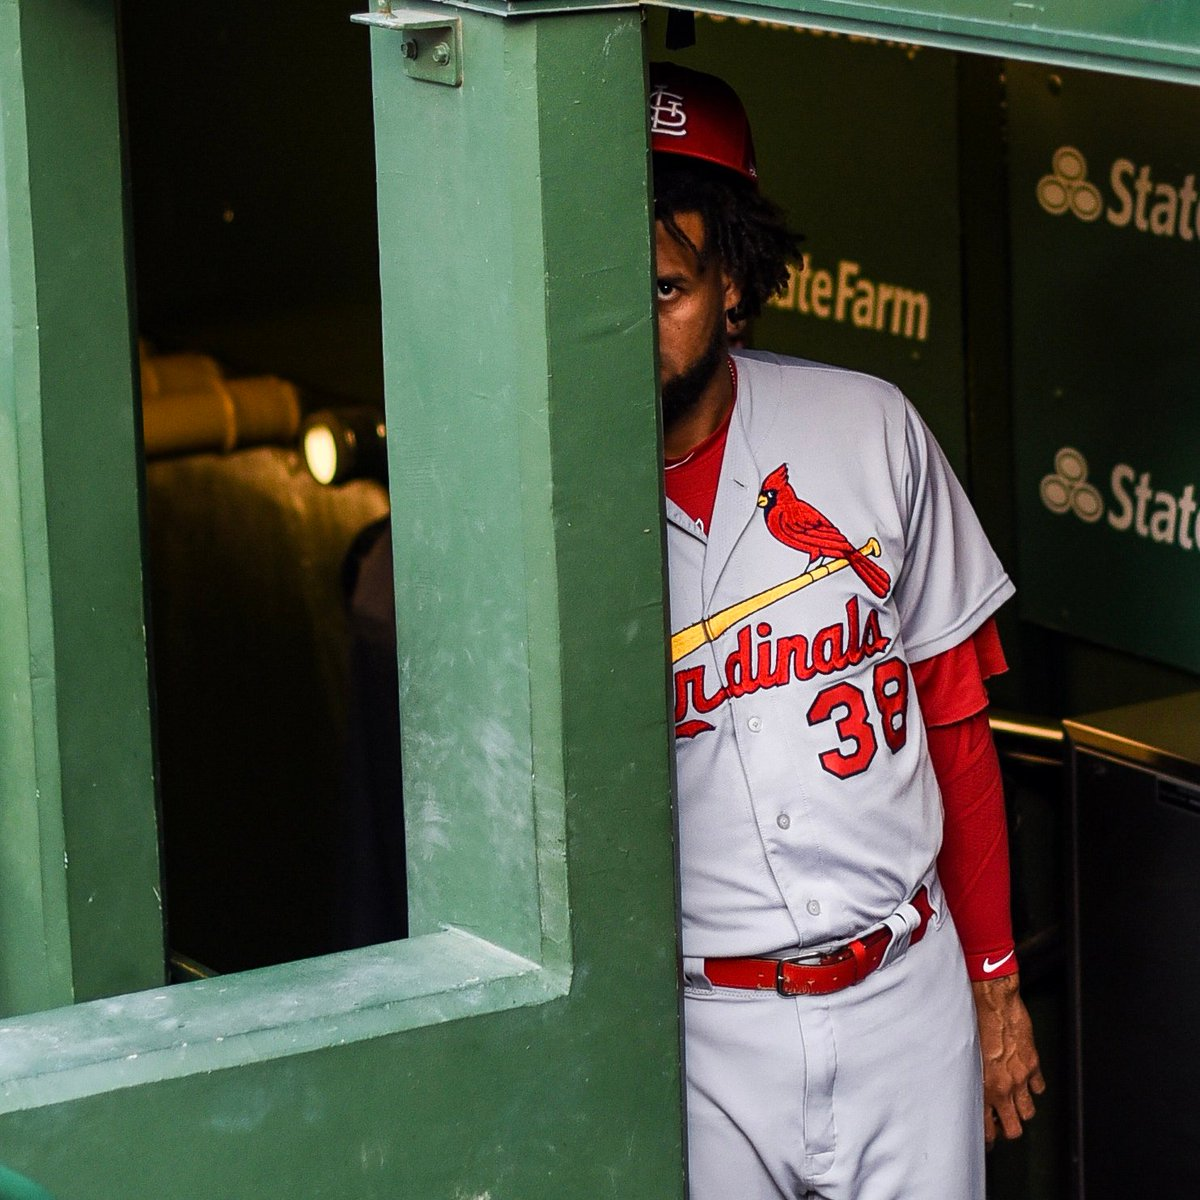 We've given you all the baseball we're legally allowed to give you today.Before we depart, here's José Martínez keeping an eye on you.Goodbye and goodnight.